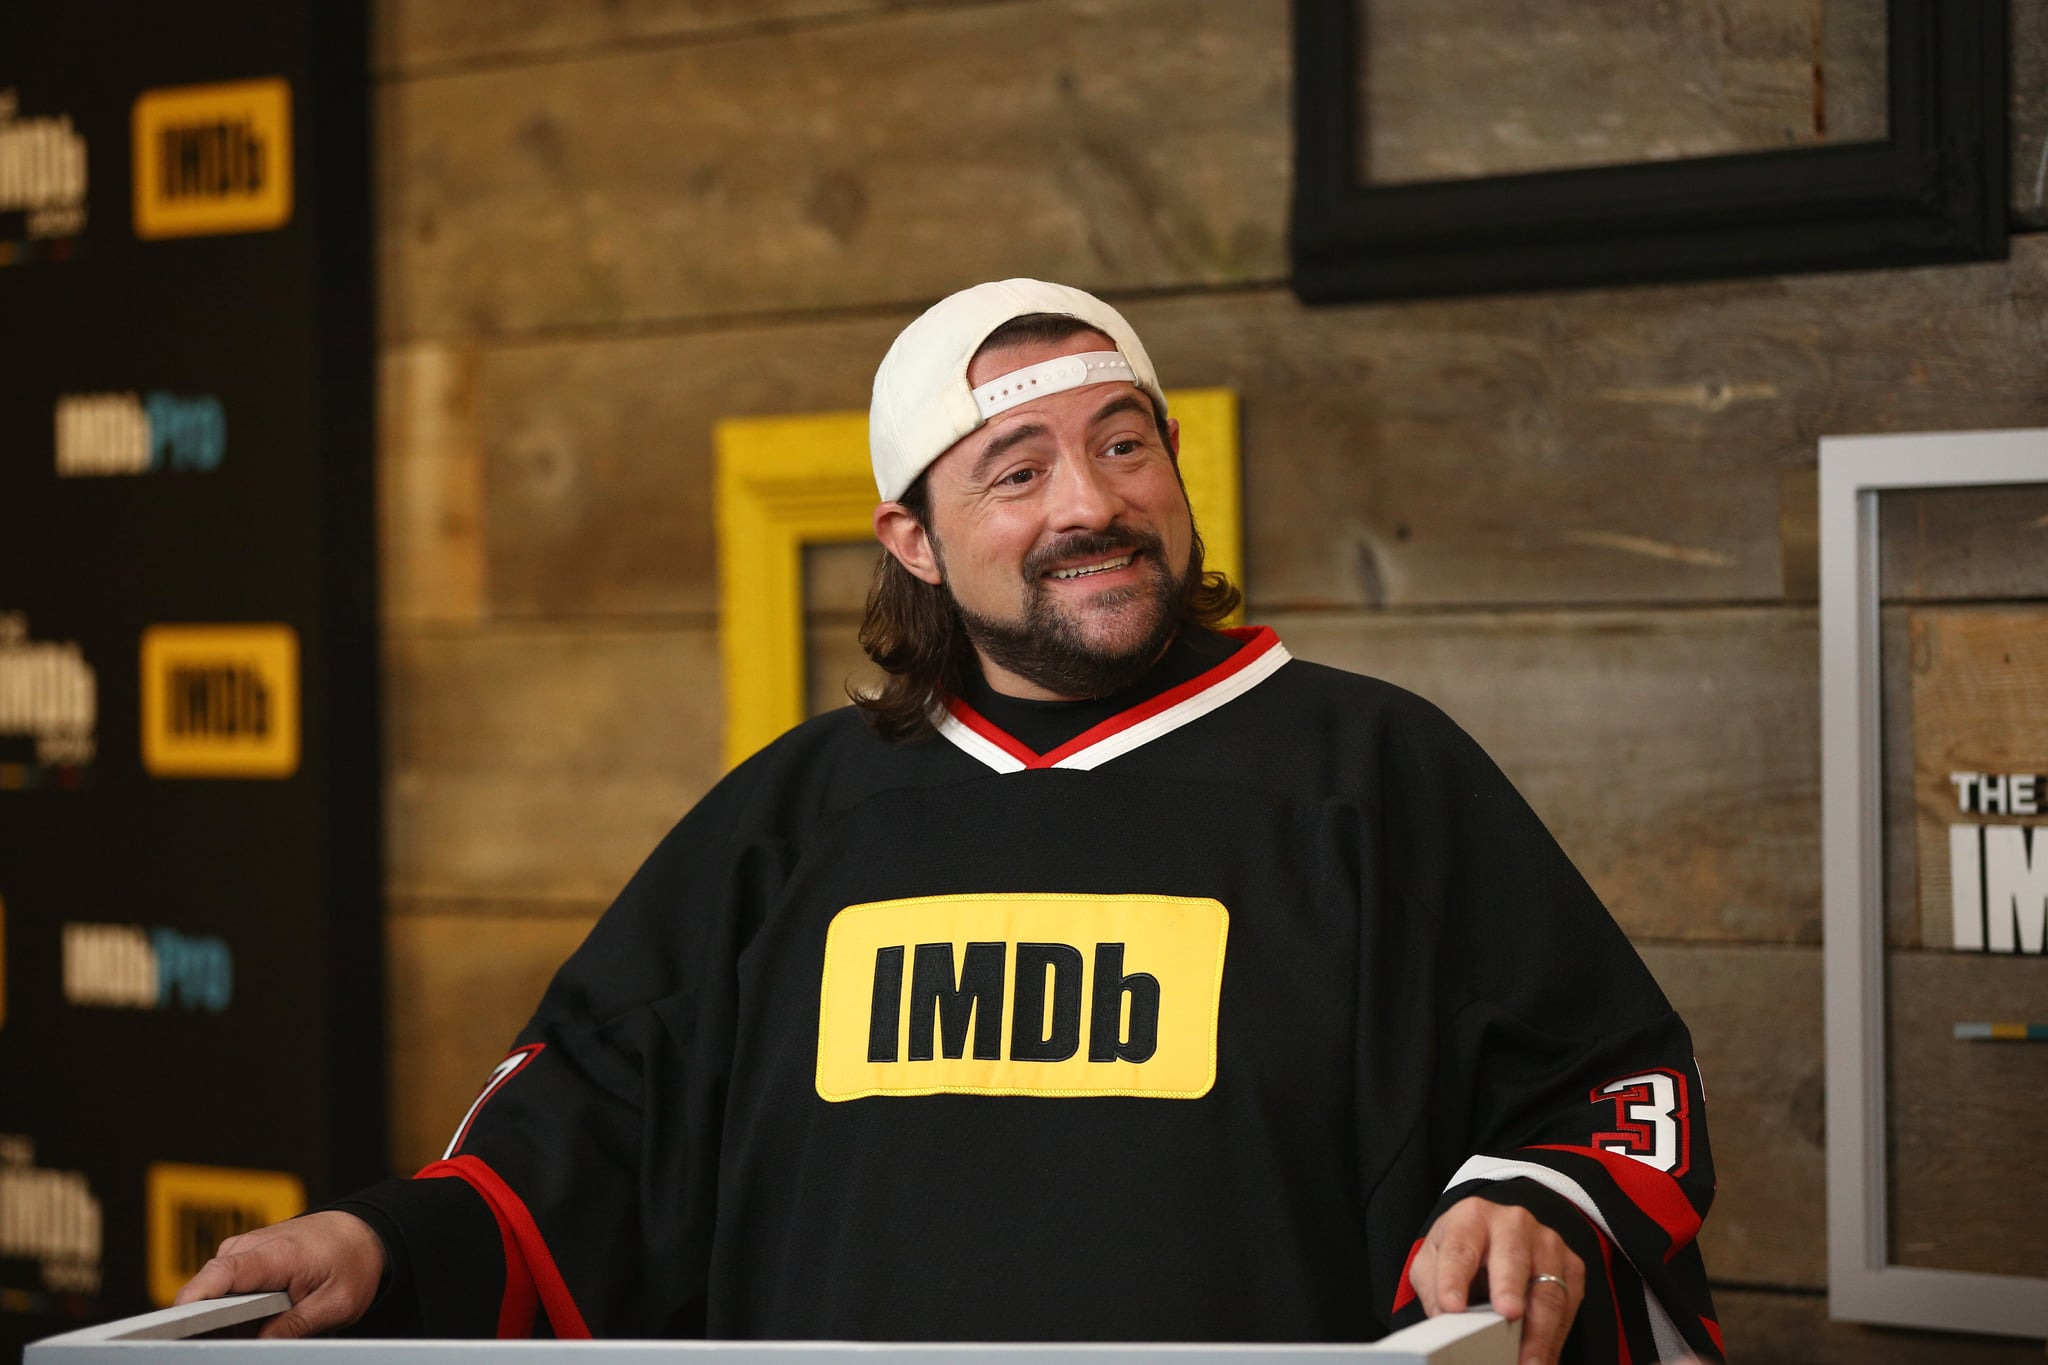 PARK CITY, UT - JANUARY 20:  Host Kevin Smith attends The IMDb Studio and The IMDb Show on Location at The Sundance Film Festival on January 20, 2018 in Park City, Utah.  (Photo by Rich Polk/Getty Images for IMDb)